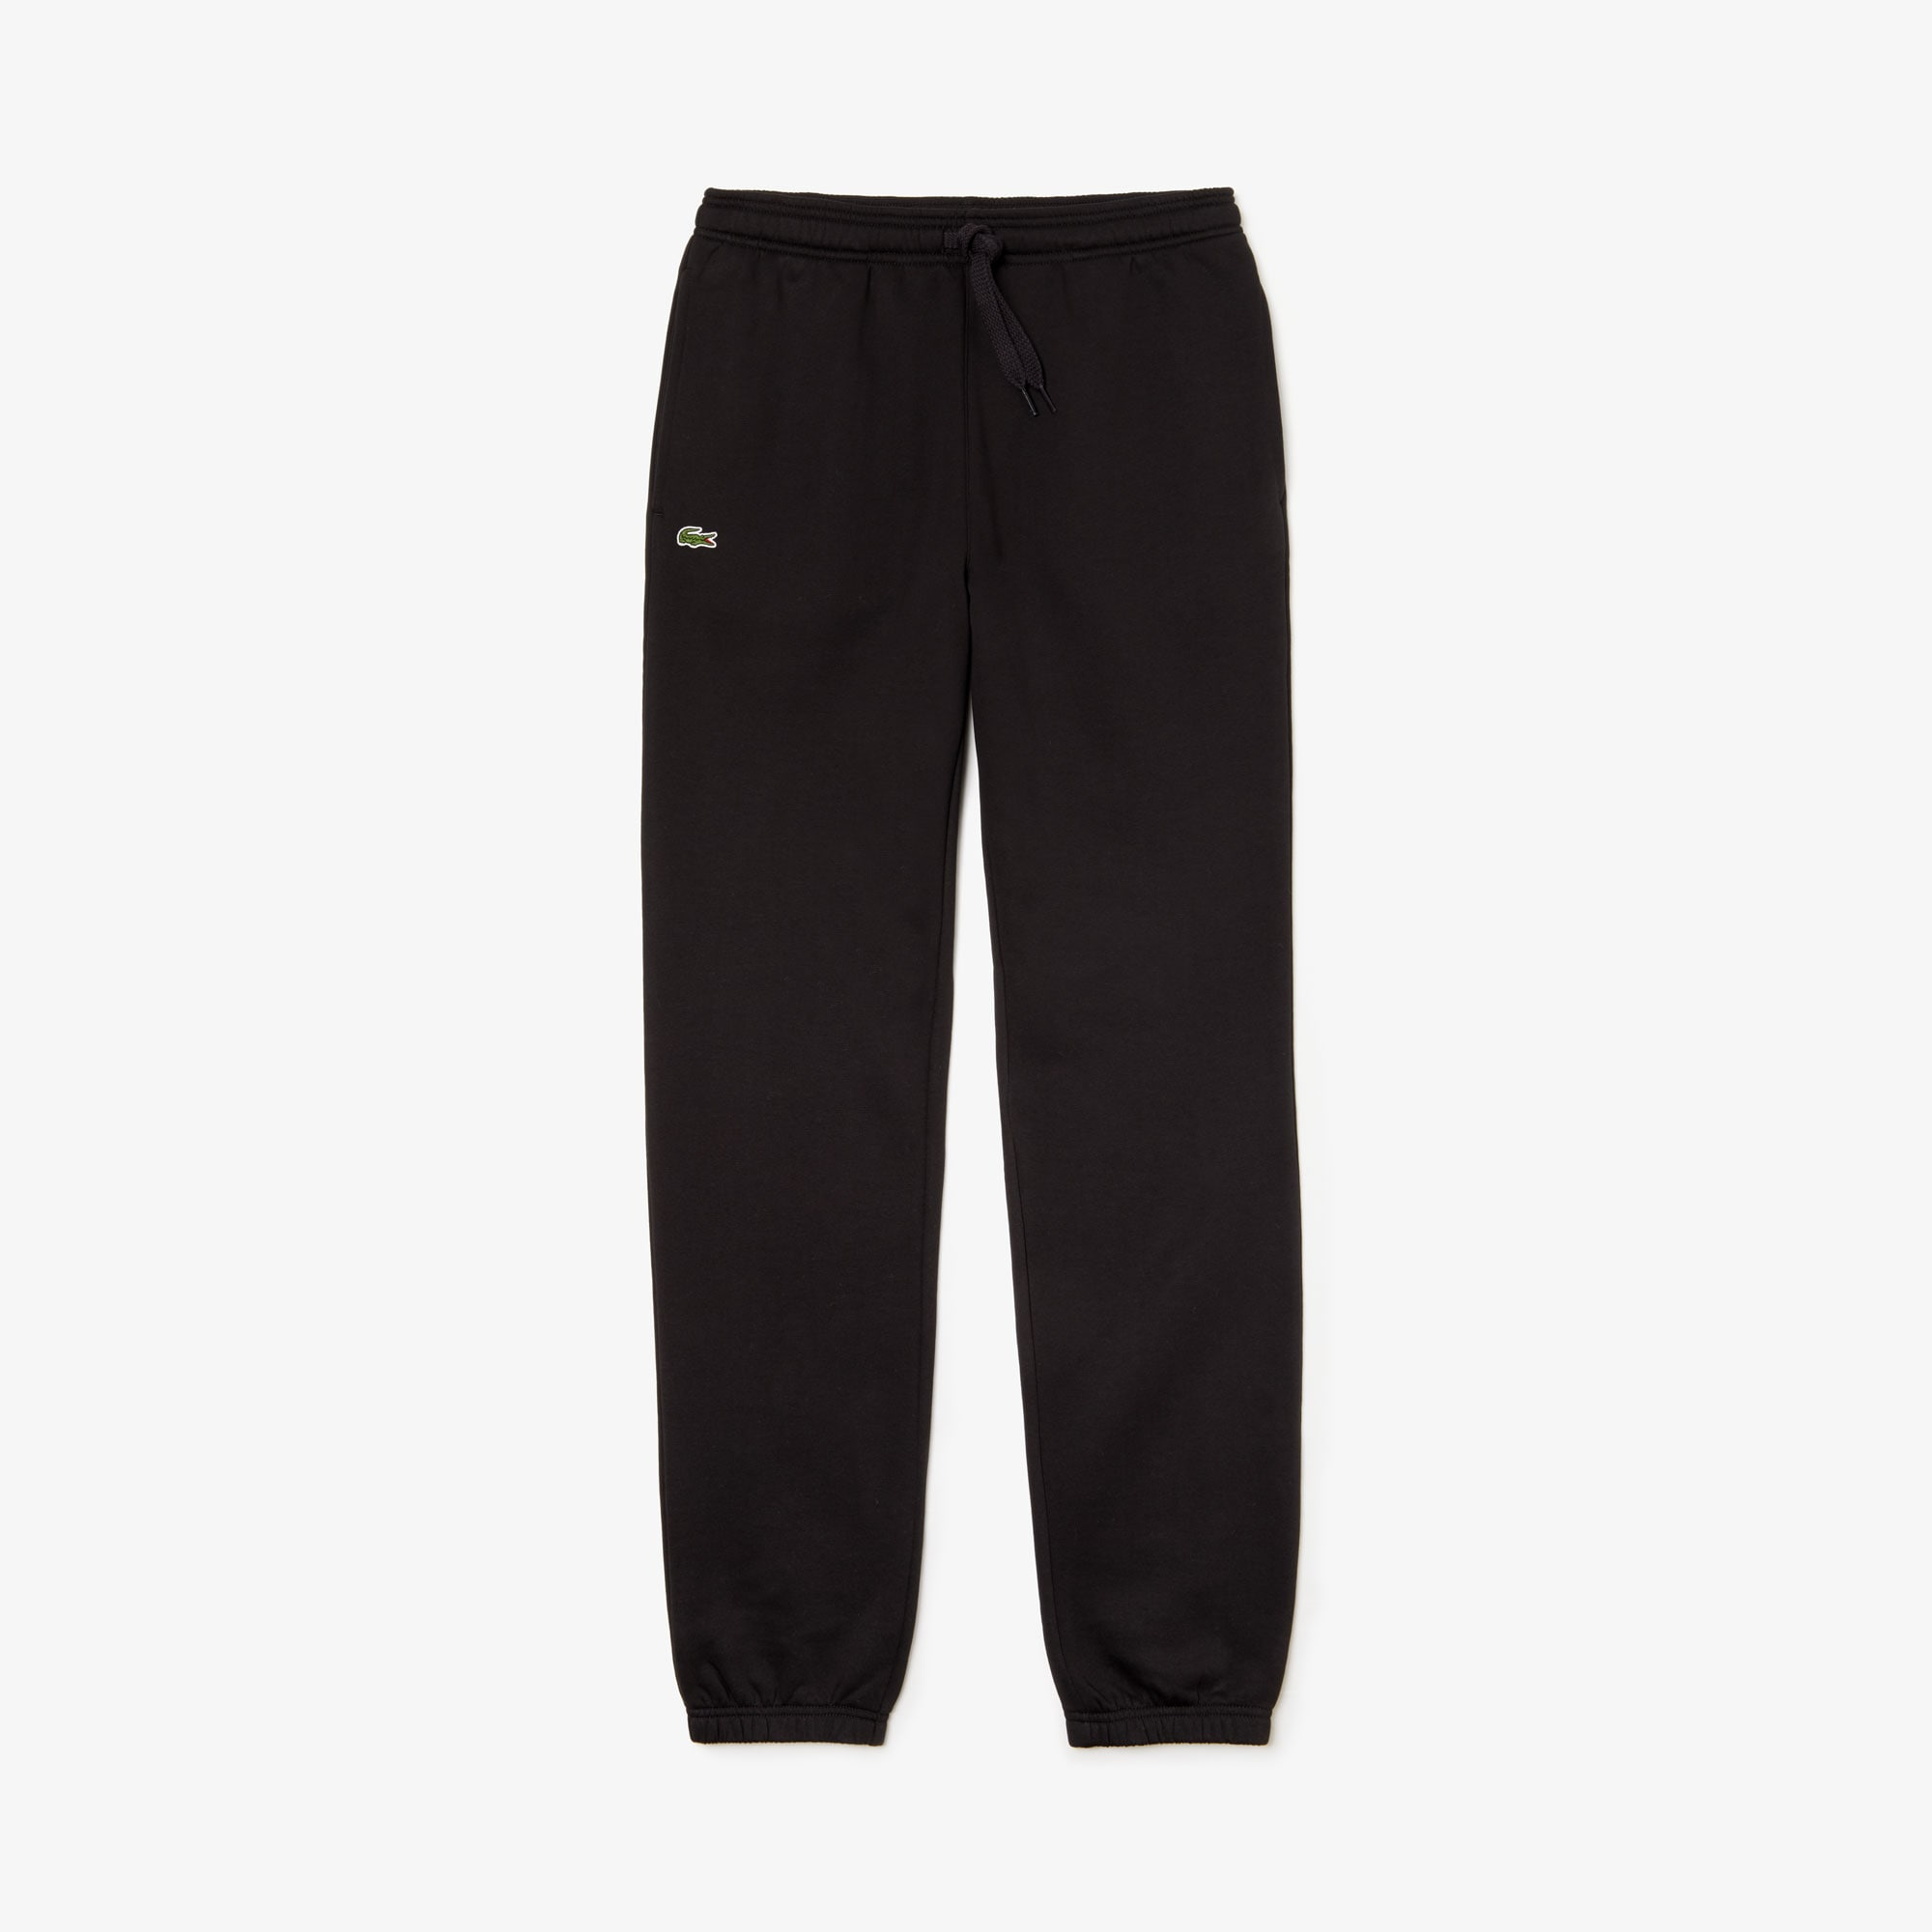 Pantalon de survêtement Tennis SPORT en molleton